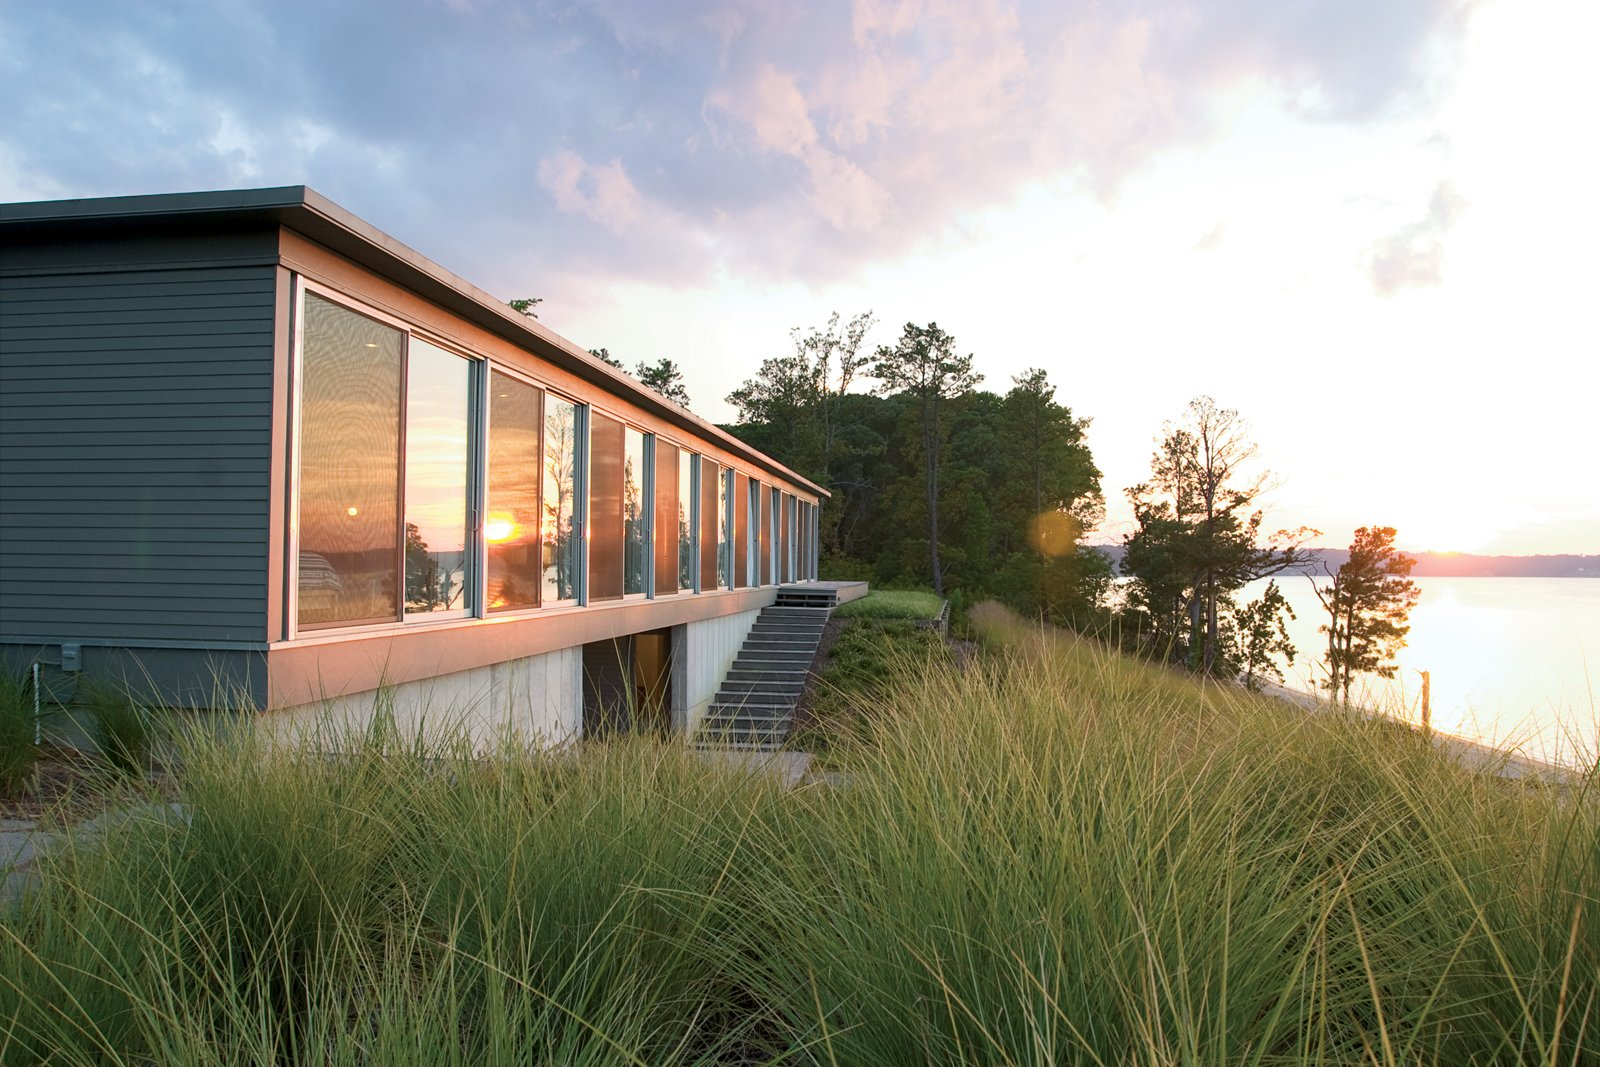 """Ziger/Snead Architects constructed this ode to rowing in rural Virginia for a Baltimore couple who share a love of sculling. """"Everywhere in the house you can see the moment where land meets water,"""" says Douglas Bothner, an associate at the firm."""